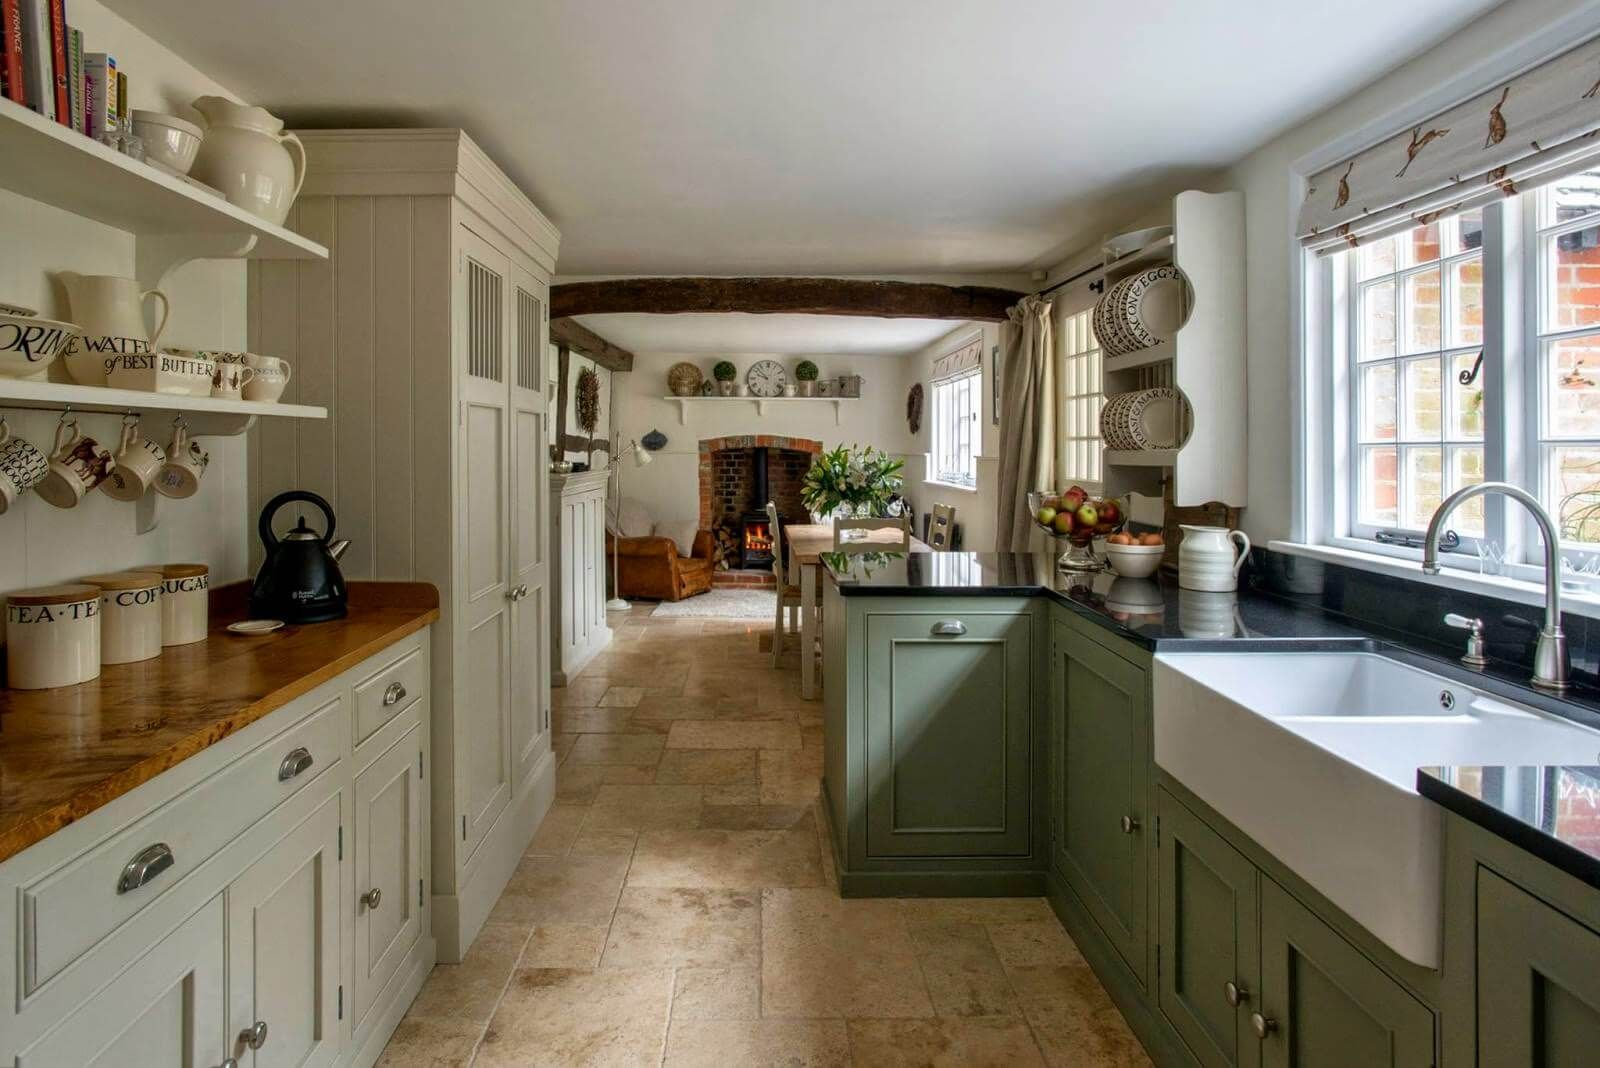 35 Farmhouse Kitchen Cabinet Ideas To Create A Warm And Welcoming Kitchen Design In Your Home Modern Country Kitchens Country Kitchen Cabinets Country Kitchen Designs